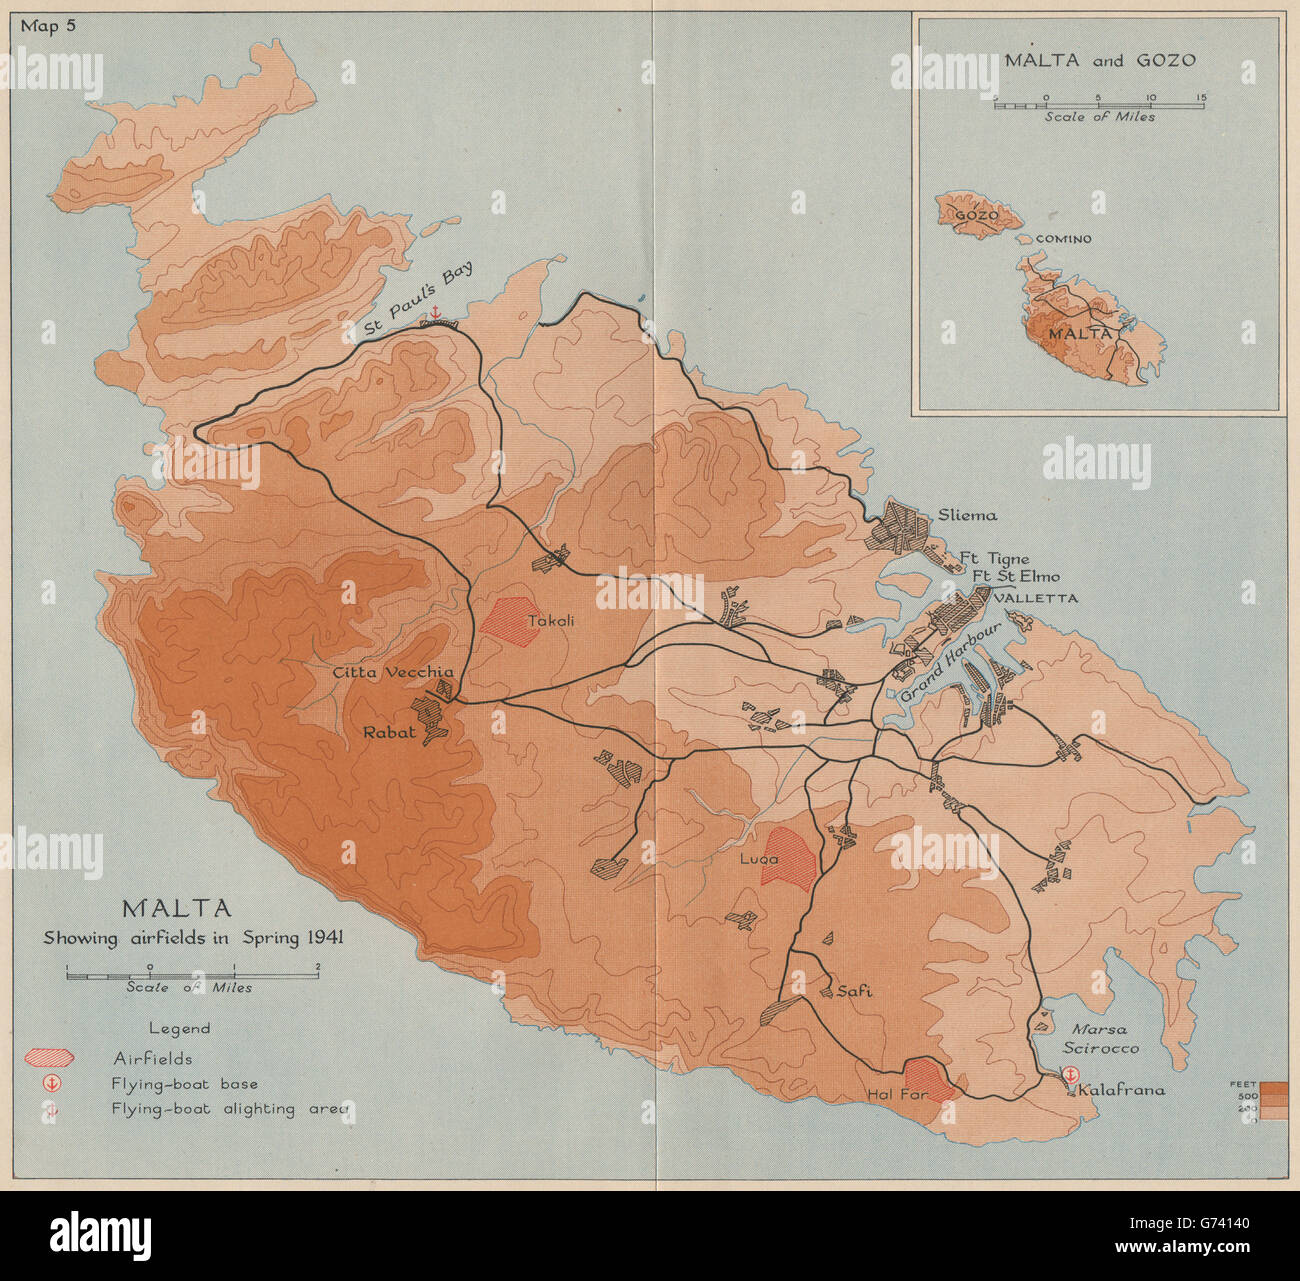 SIEGE OF MALTA. Malta showing airfields in spring 1941. World War 2 ...